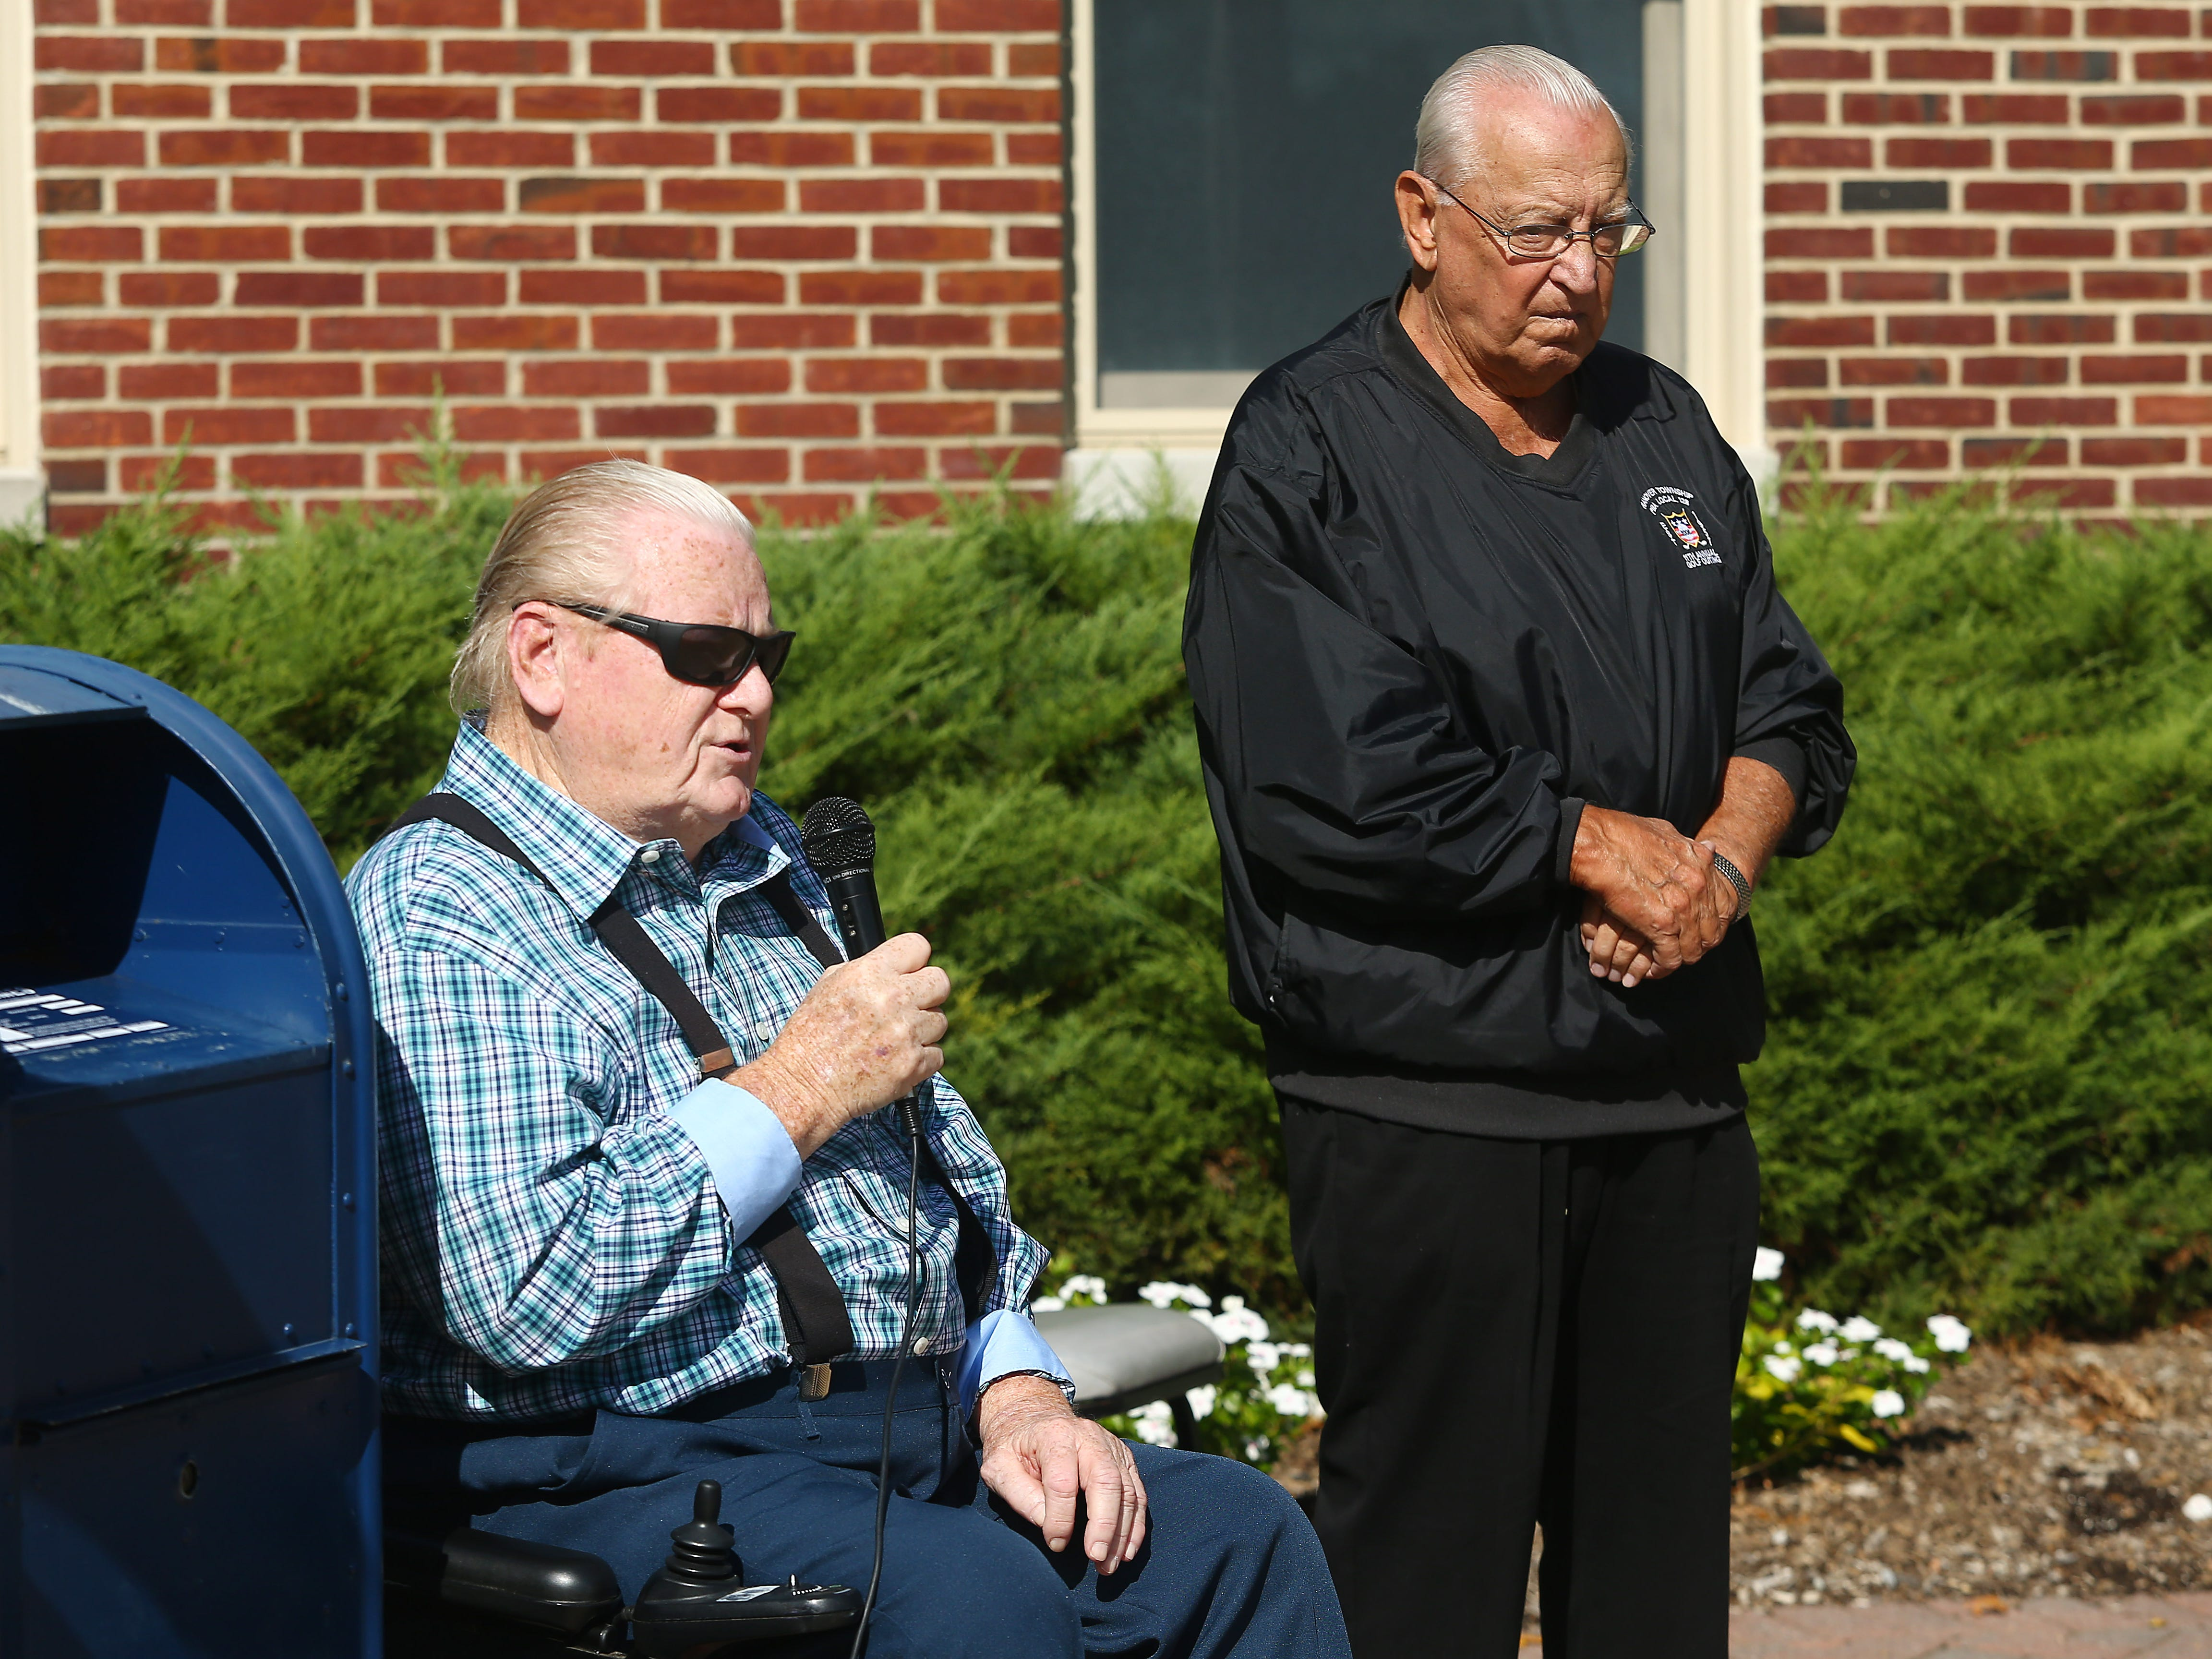 Joe Mihalko speaks at the Hanover Municipal Building during a police-style clapout for retirement of 60-year officer and crossing guard, Steve Bolcar. October 3, 2018, Hanover, NJ